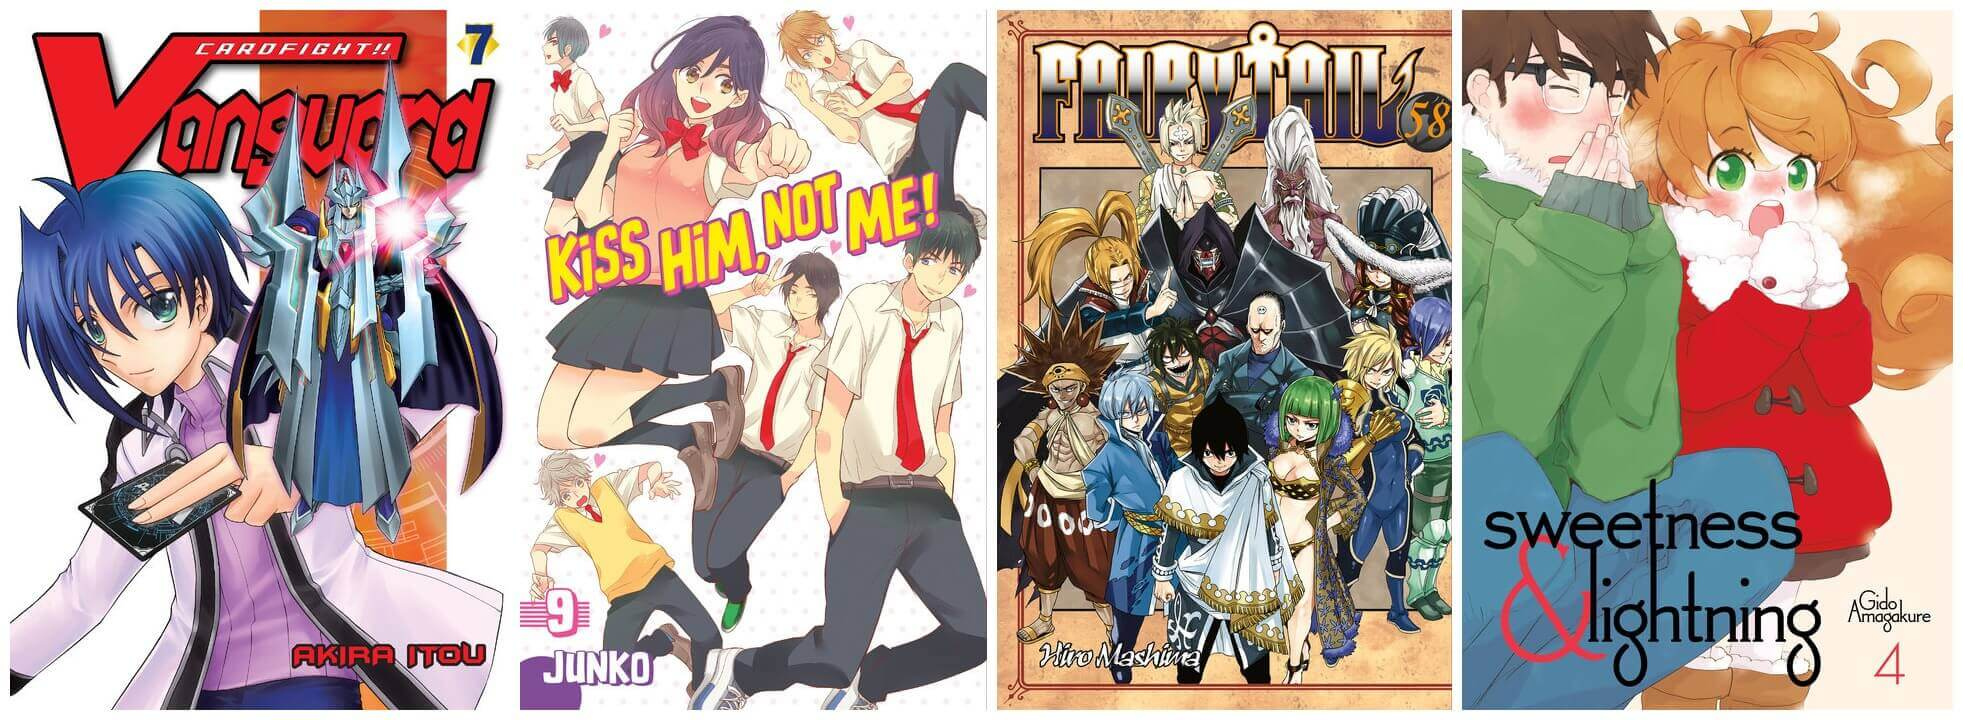 February 2017 Manga Releases Covers of Cardfight Vanguard, Kiss Him Not Me, Fairy Tail, and Sweetness & Lightning.